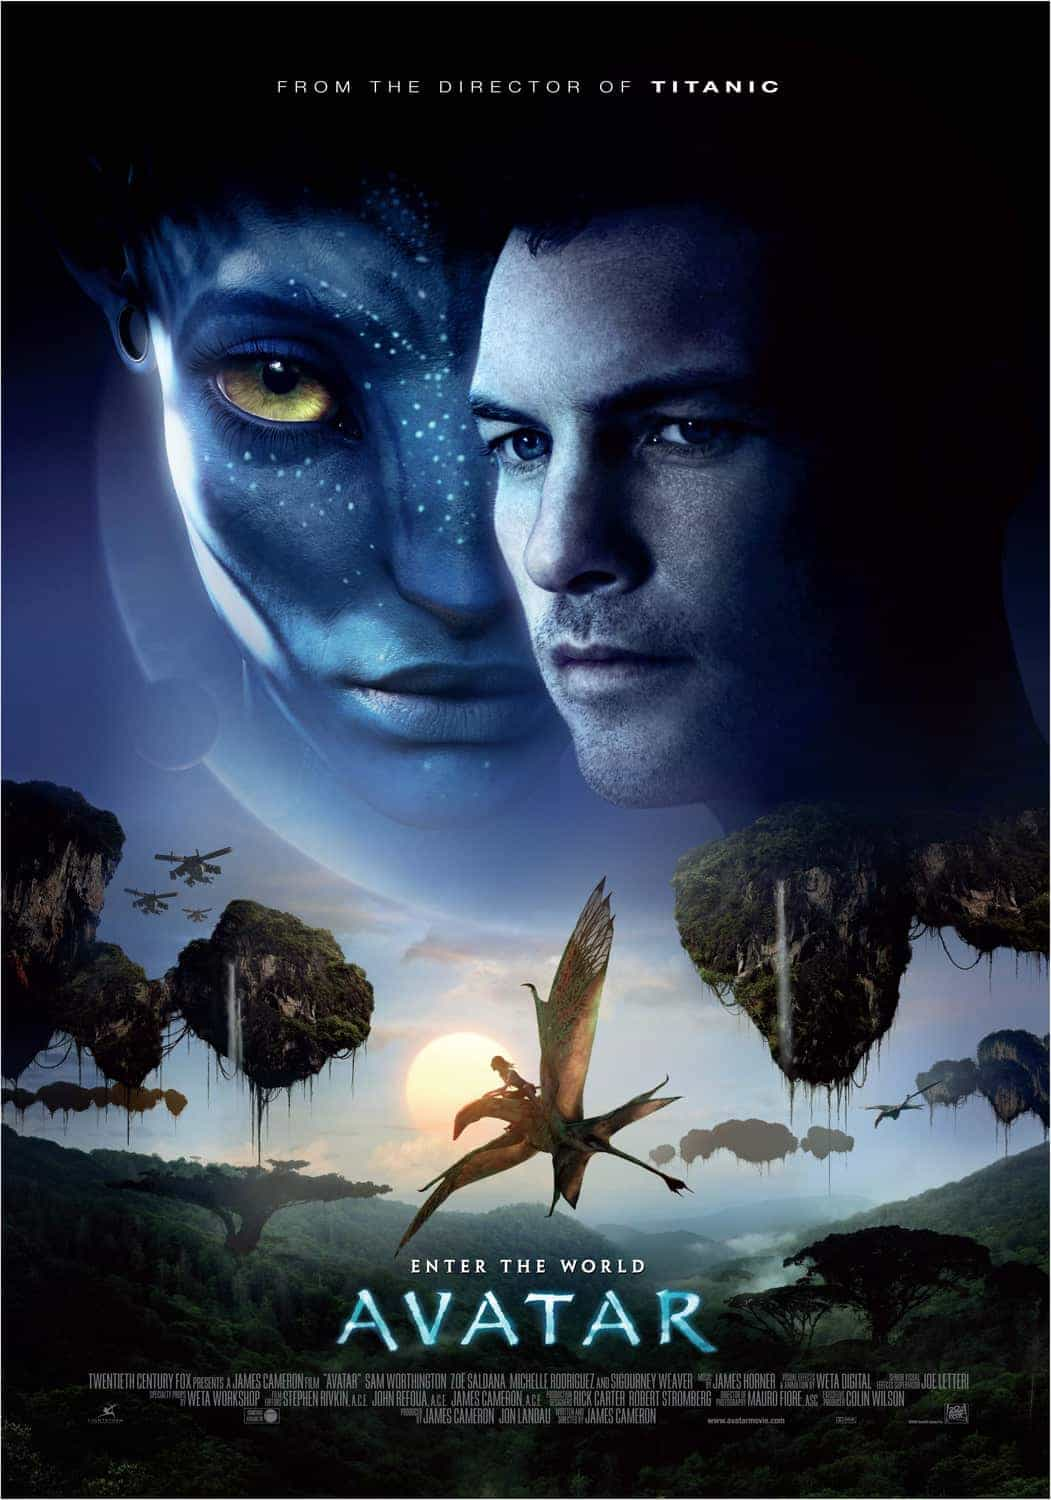 Avatar is the top pirated film of 2010